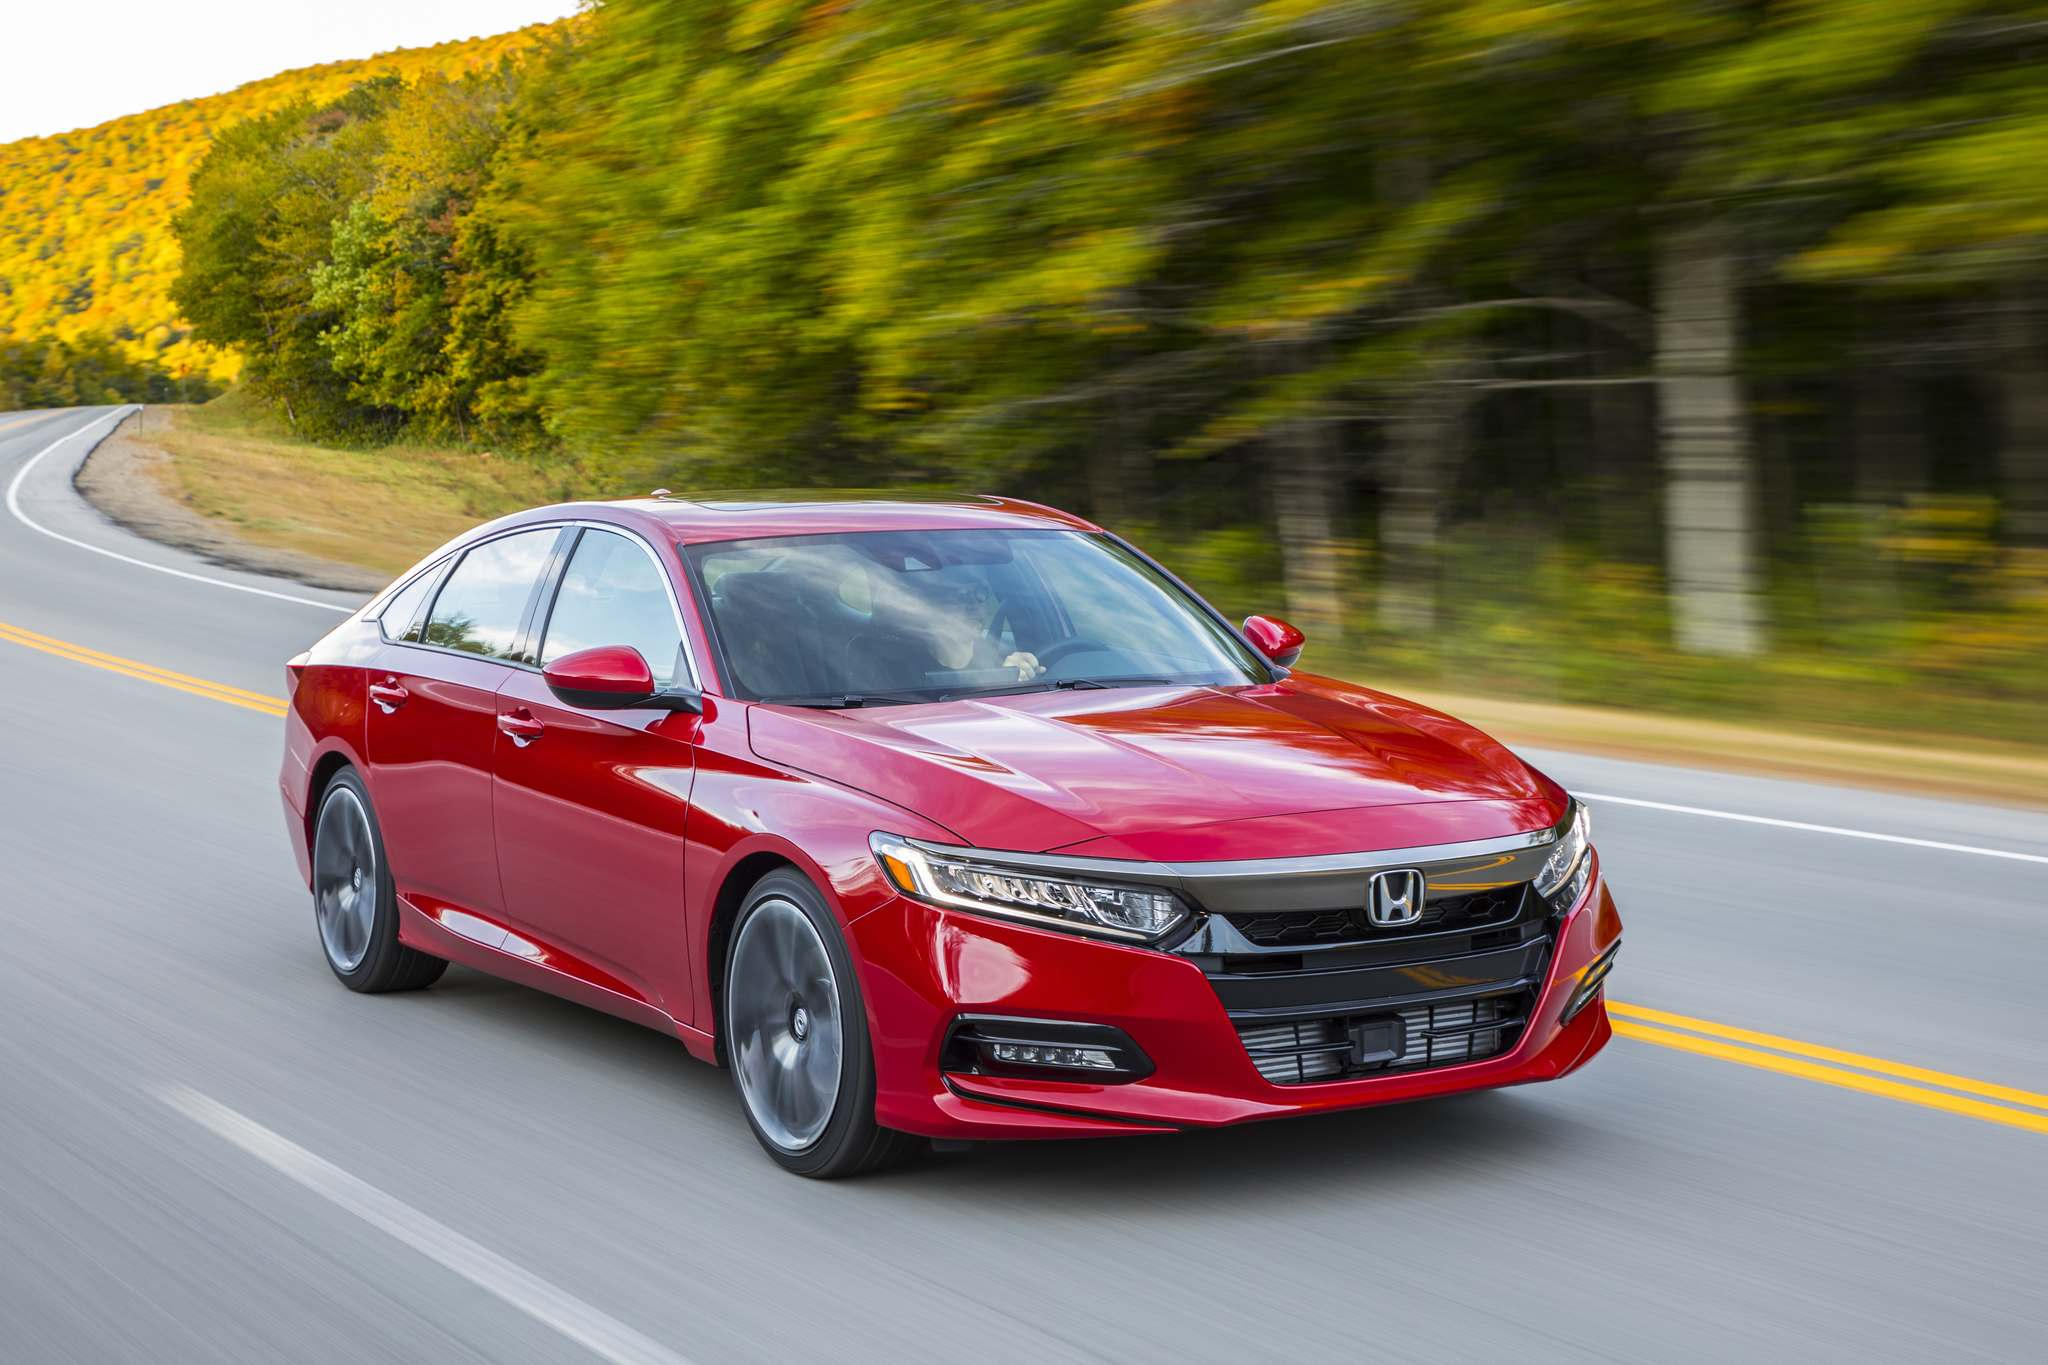 HondaThe Accord is second in sales for the Canadian mid-size sedan market, behind the Toyota Camry and ahead of the Nissan Altima.